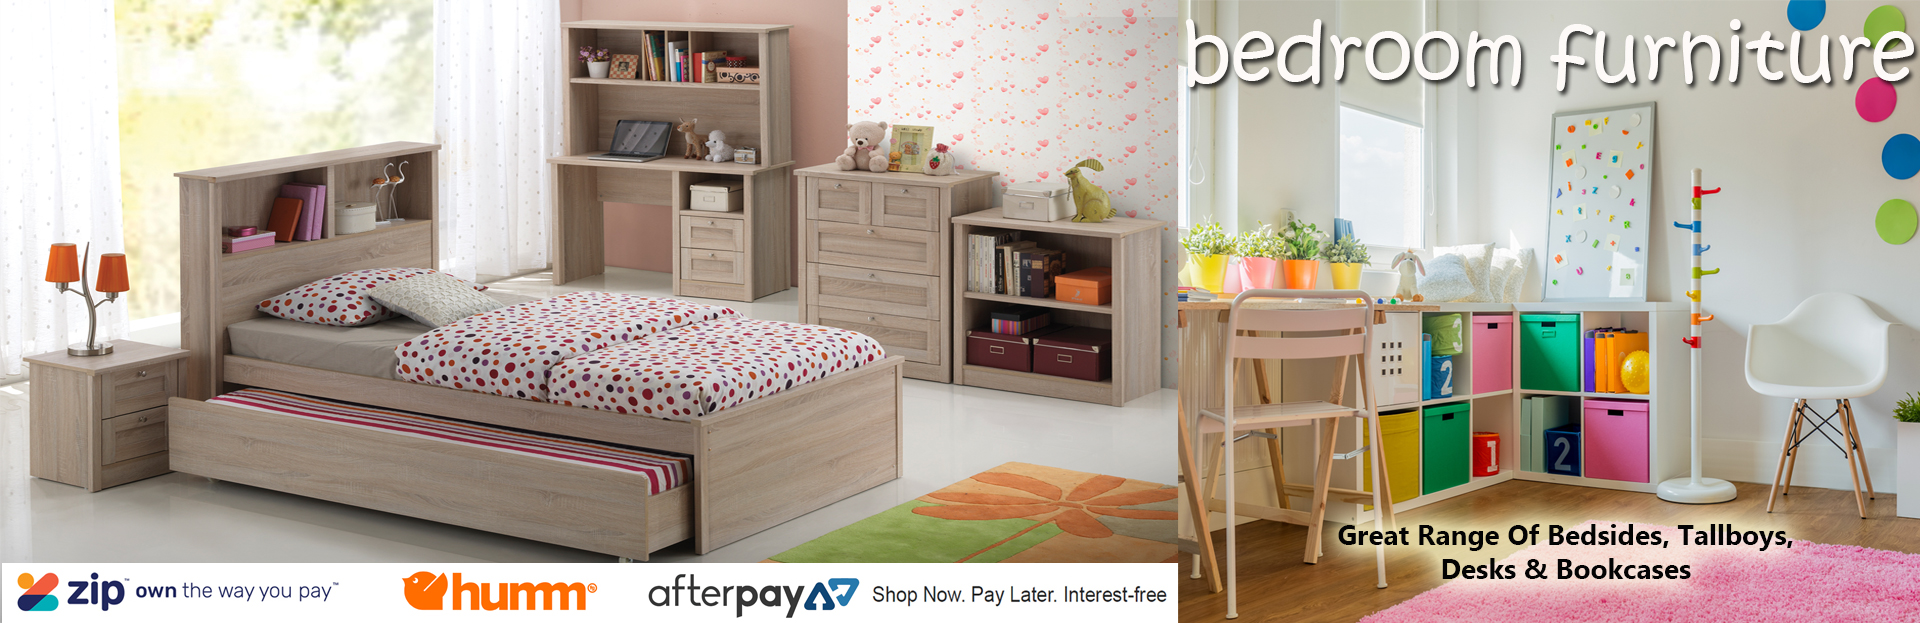 Kids Furniture | Kids Bedroom Furniture | Kids Bedrooms ...